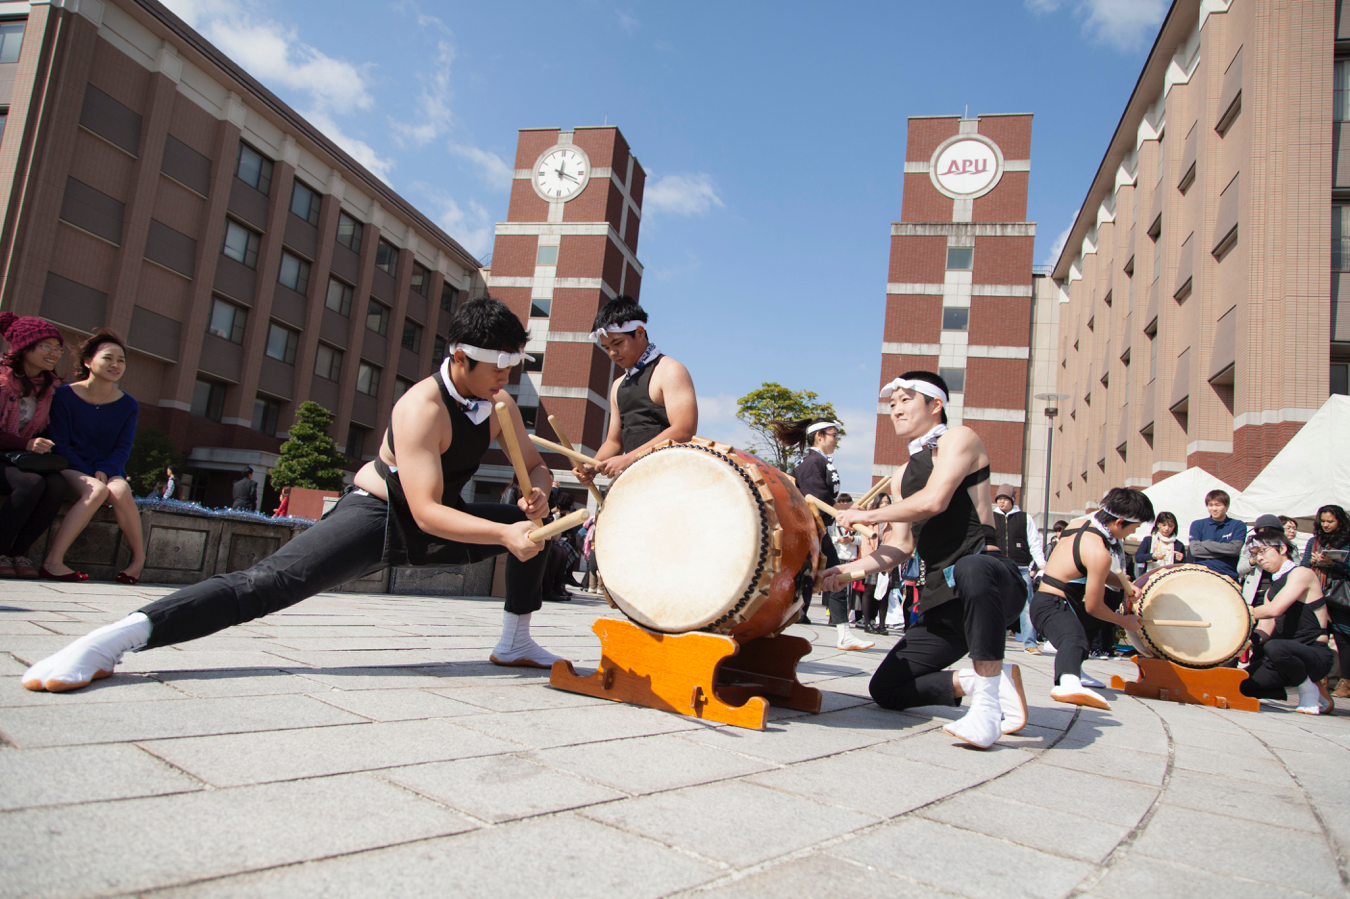 APU campus with drummers